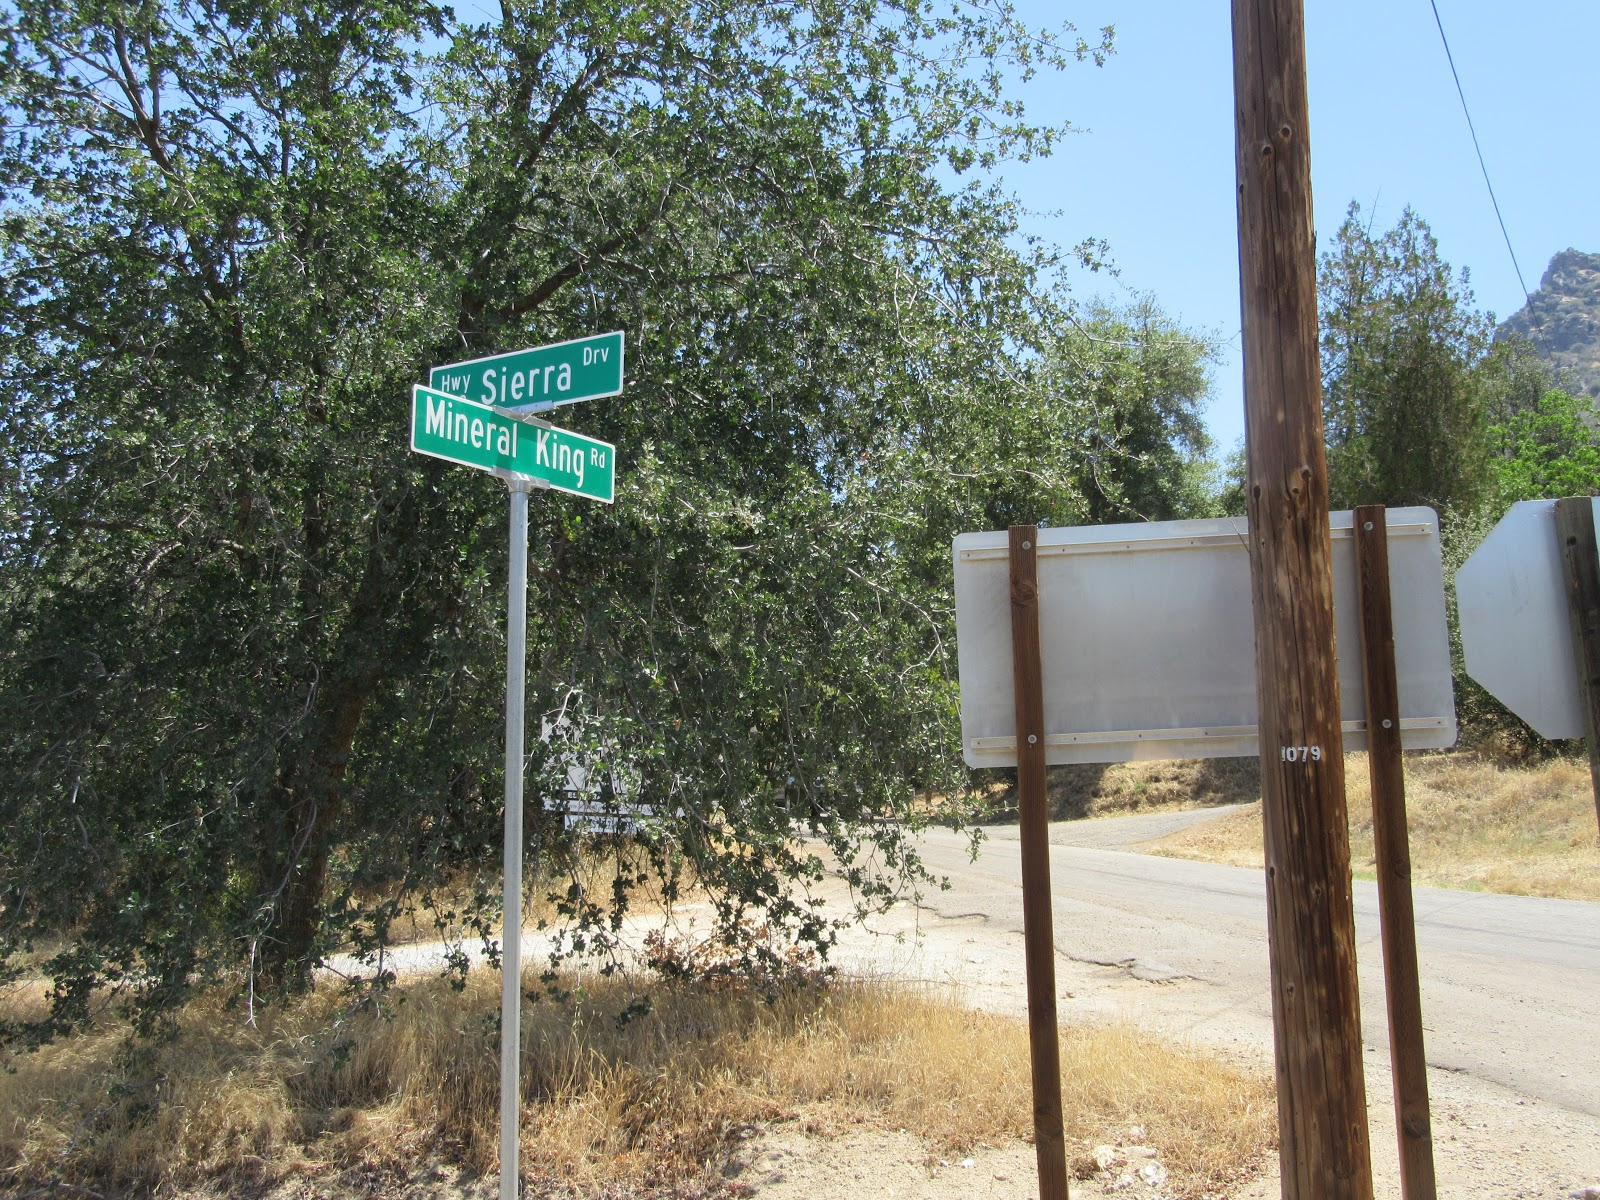 Beginning of the Mineral King bike climb - roadway sign for Mineral King Road.